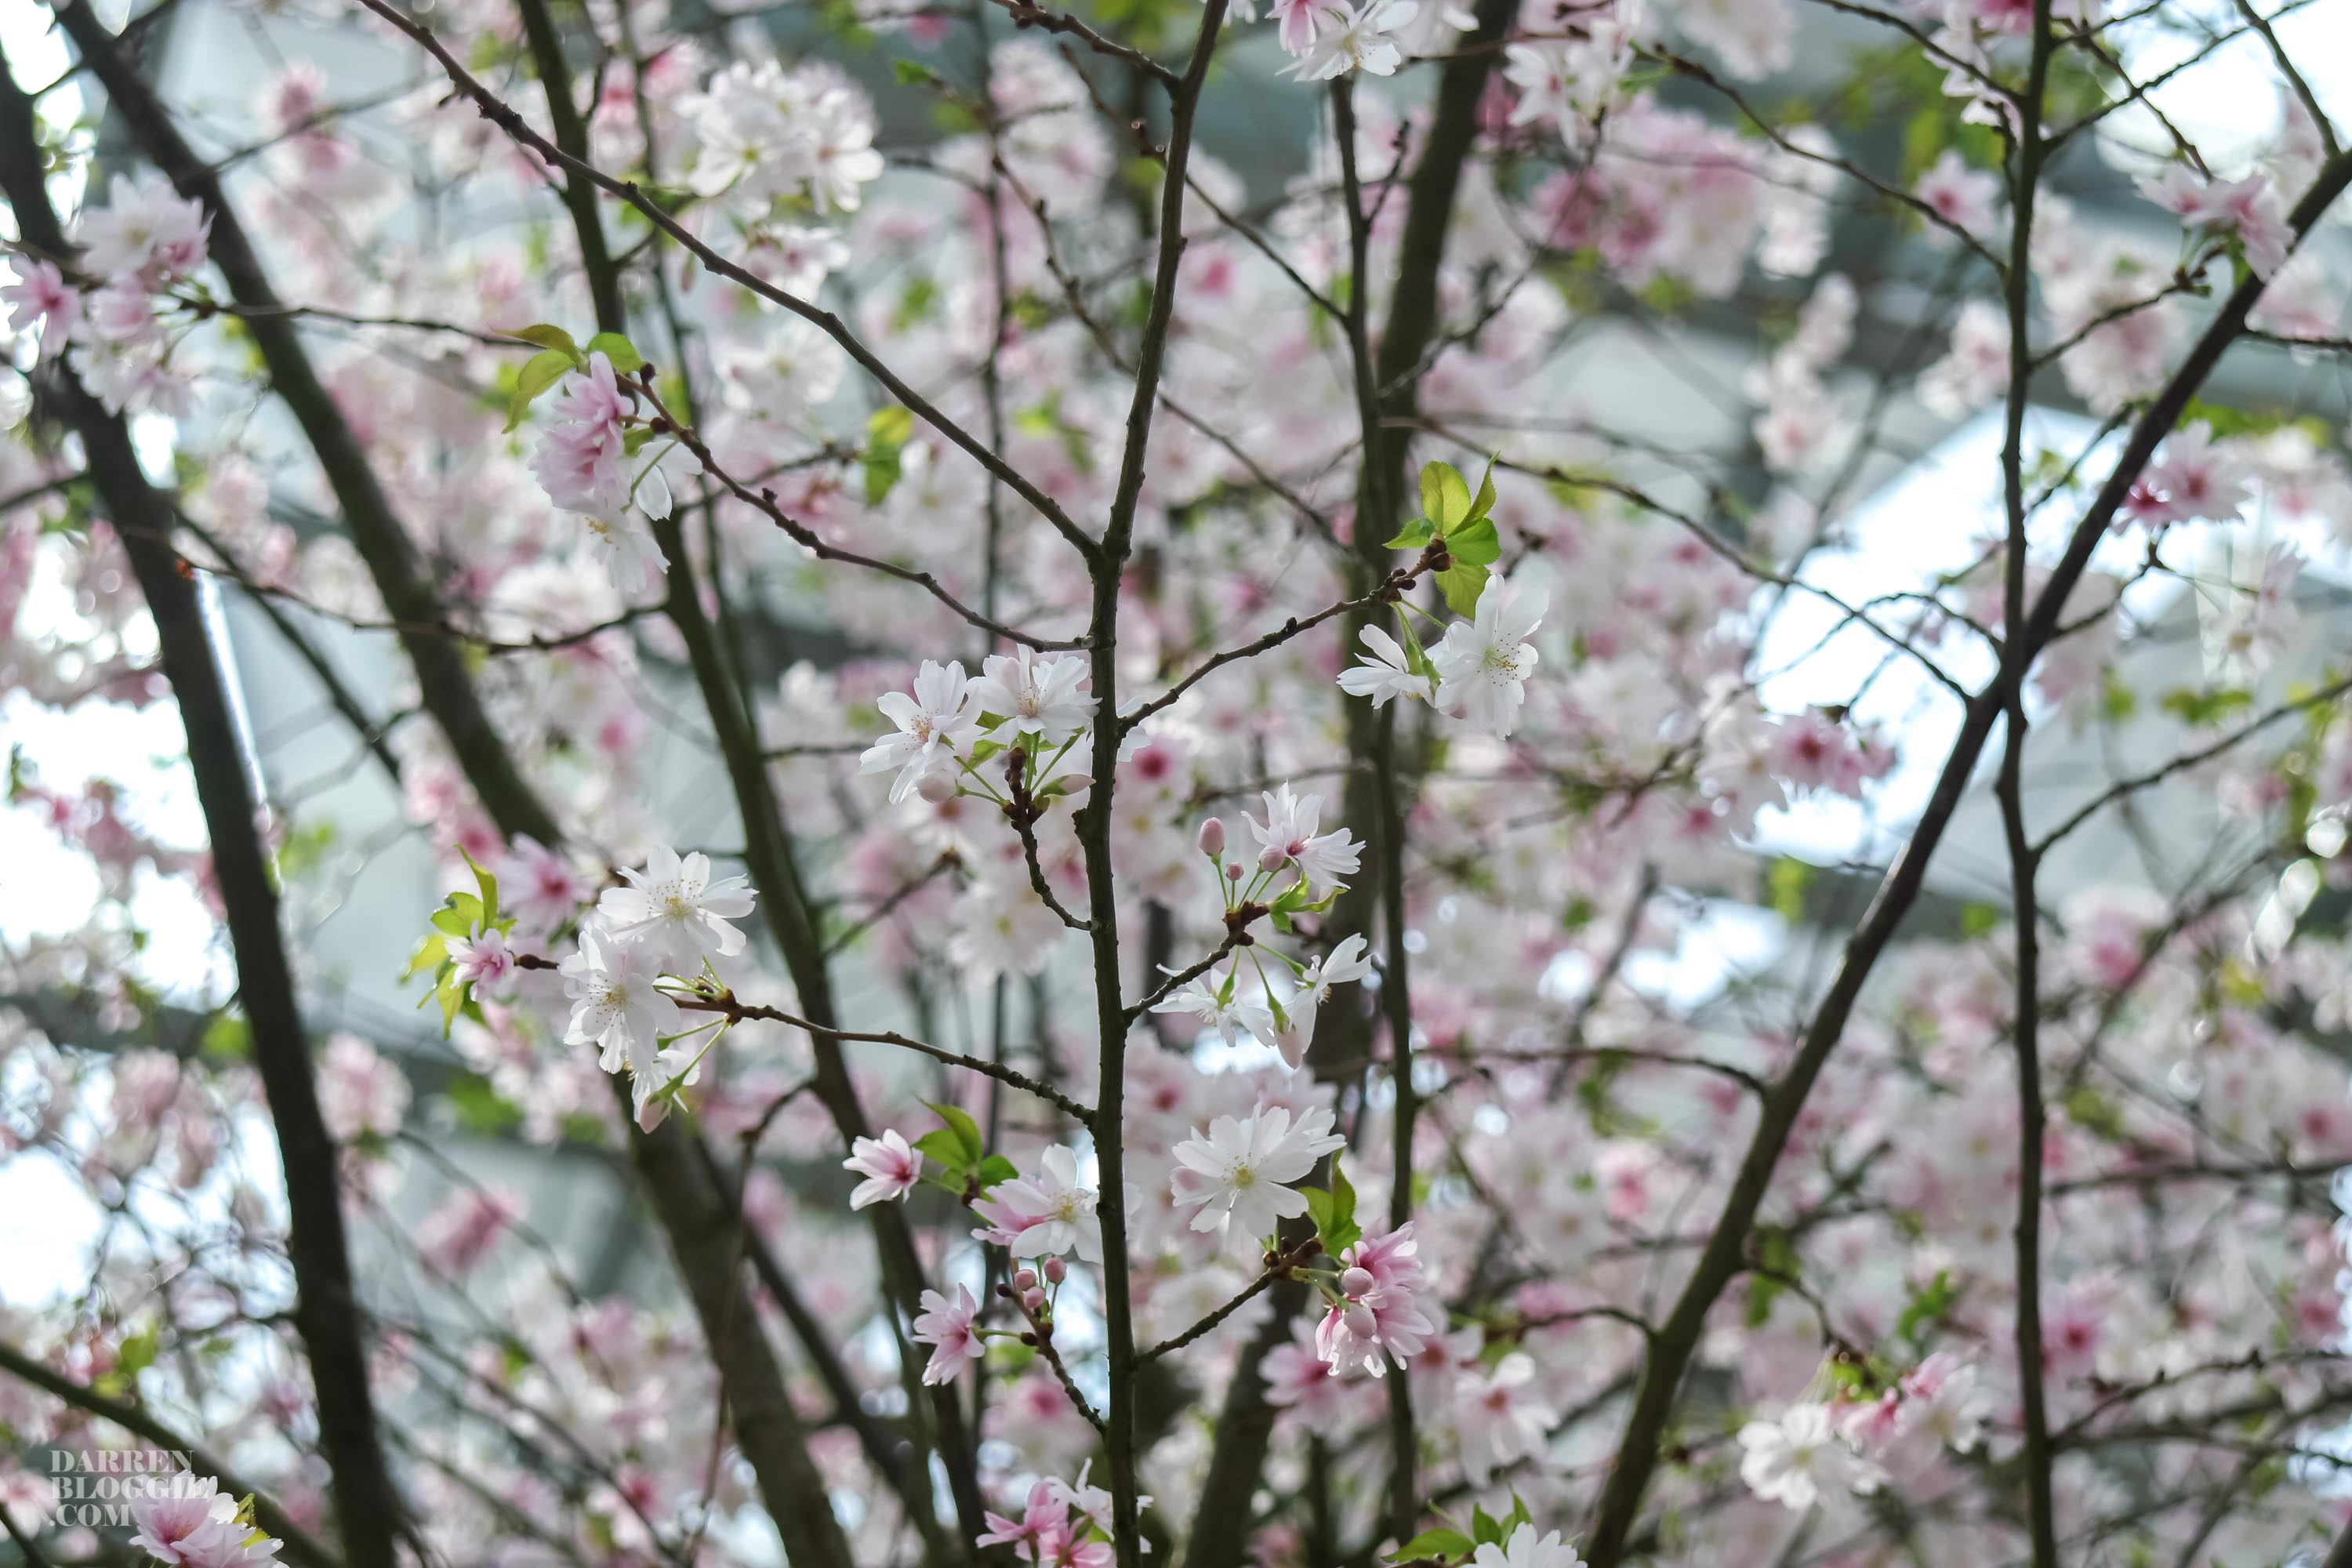 blossom-bliss-cherry-blossom-at-gardens-by-the-bay-darrenbloggie-4